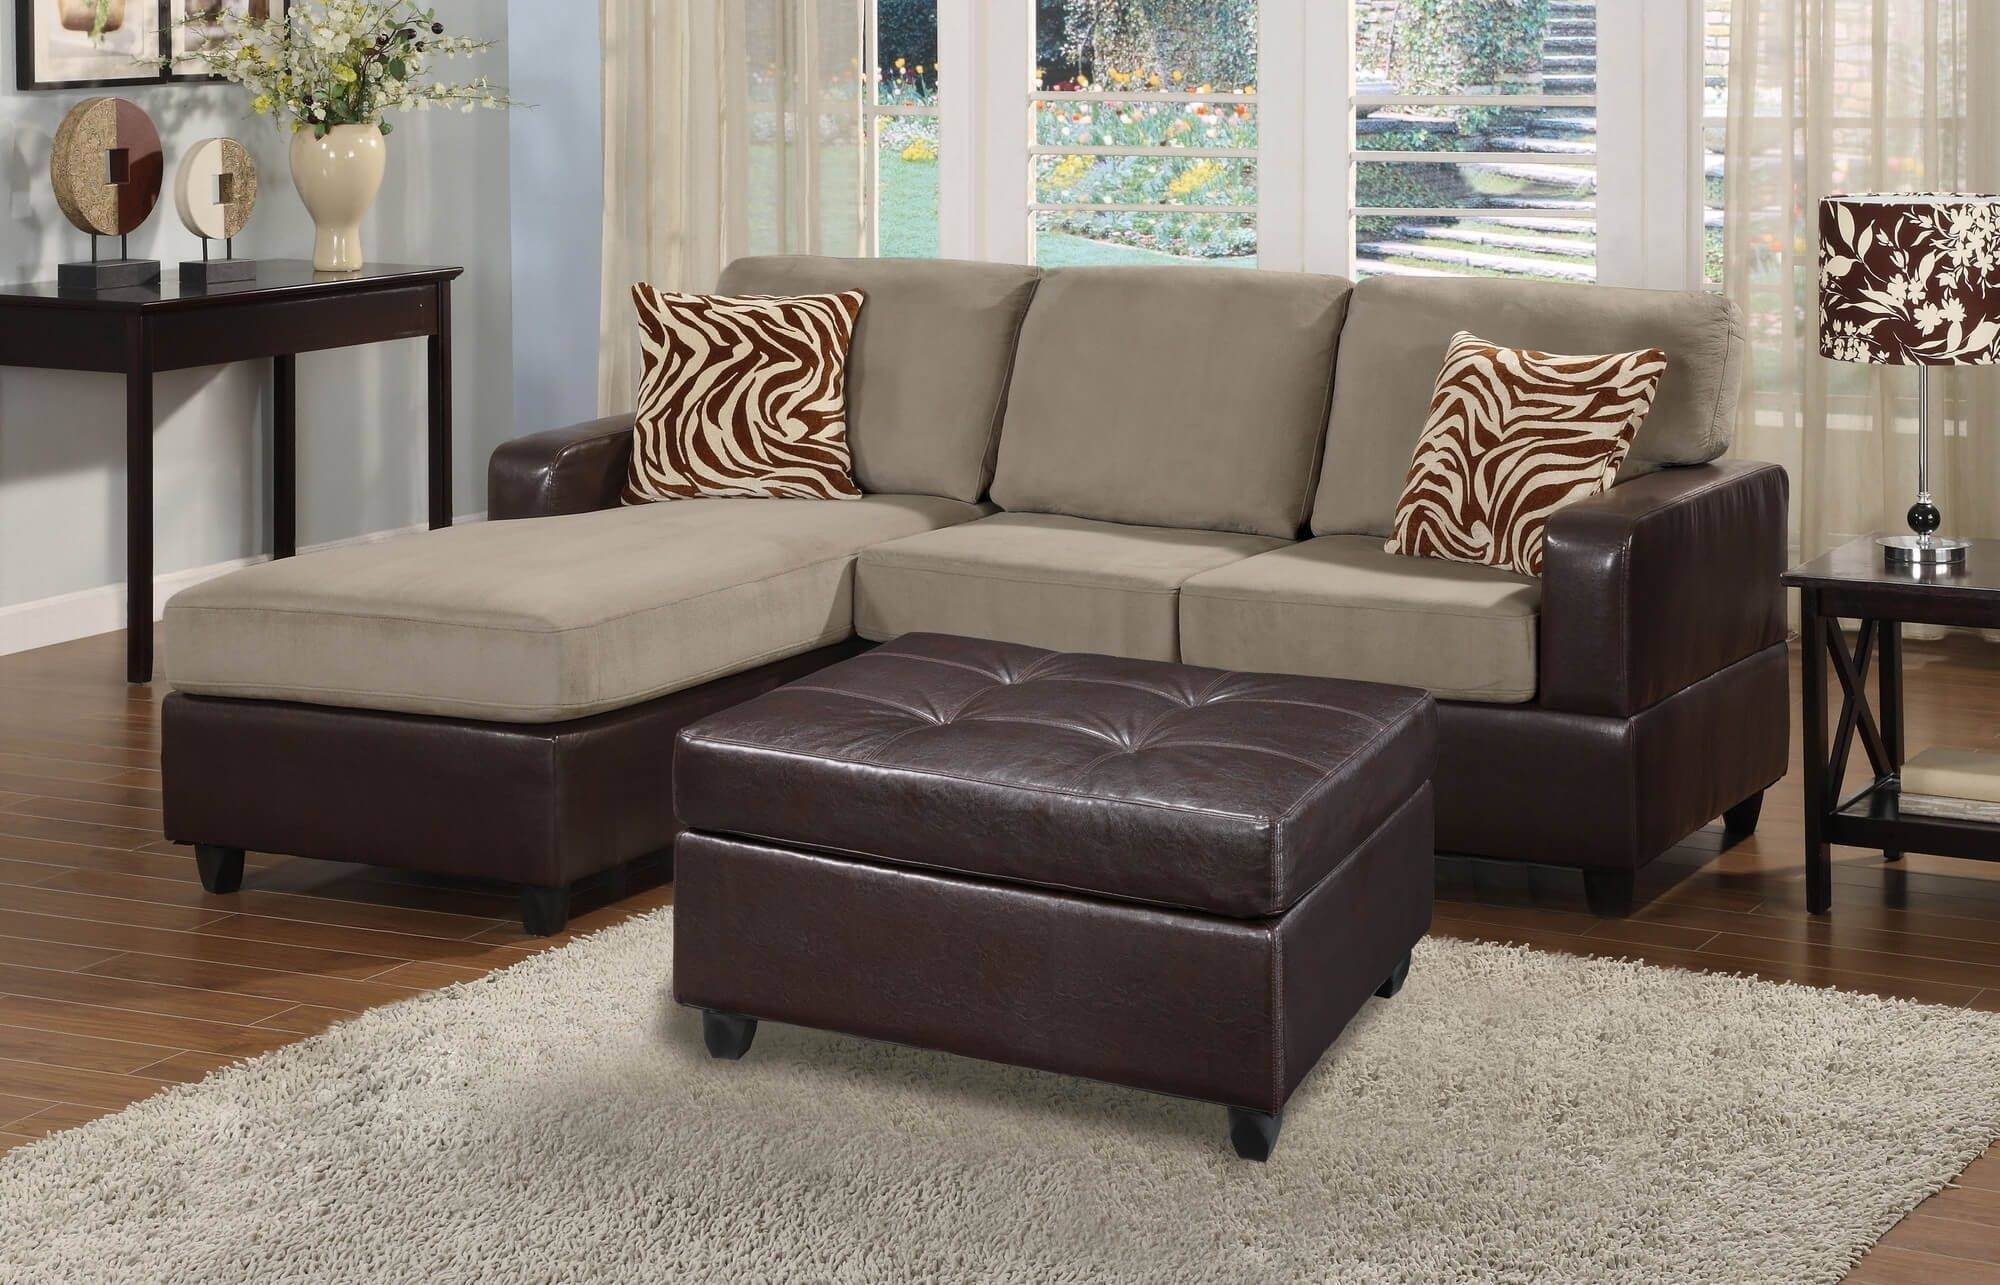 Inspiration Small 2 Piece Sectional Sofa Pictures Bh6M – Sofa Pictures with Small 2 Piece Sectional Sofas (Image 20 of 30)